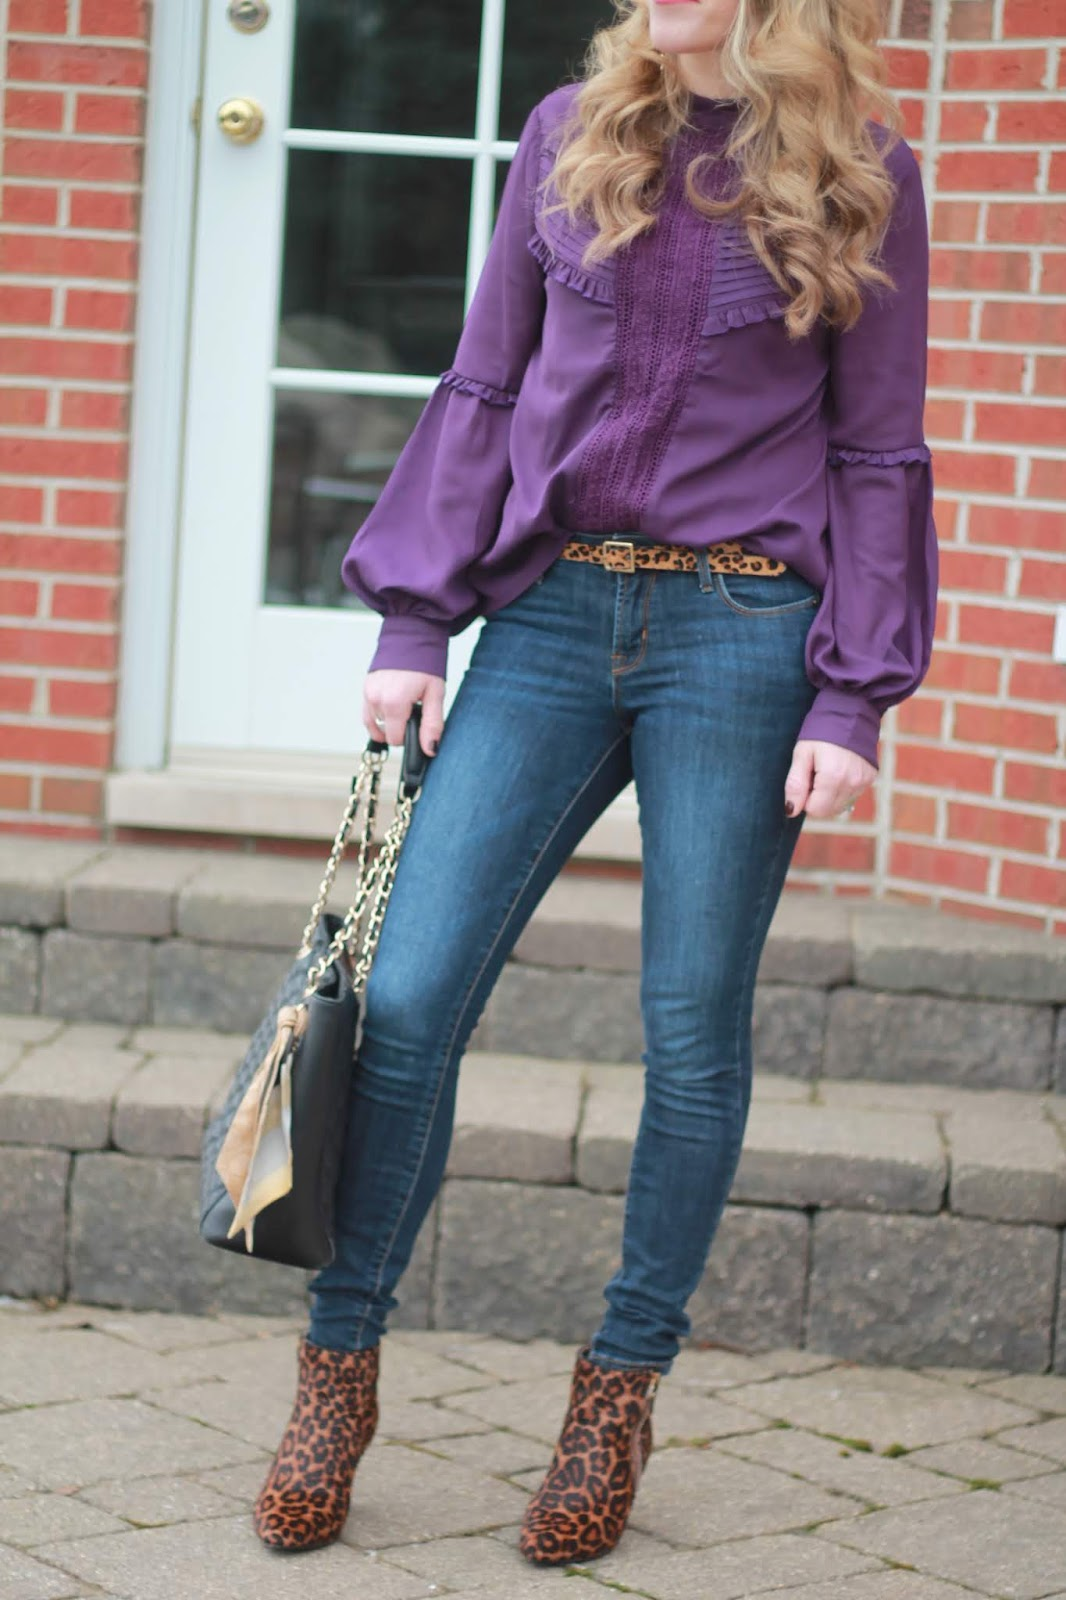 purple ruffle blouse, Rockstar jeans, leopard booties, leopard belt, black quilted leather tote